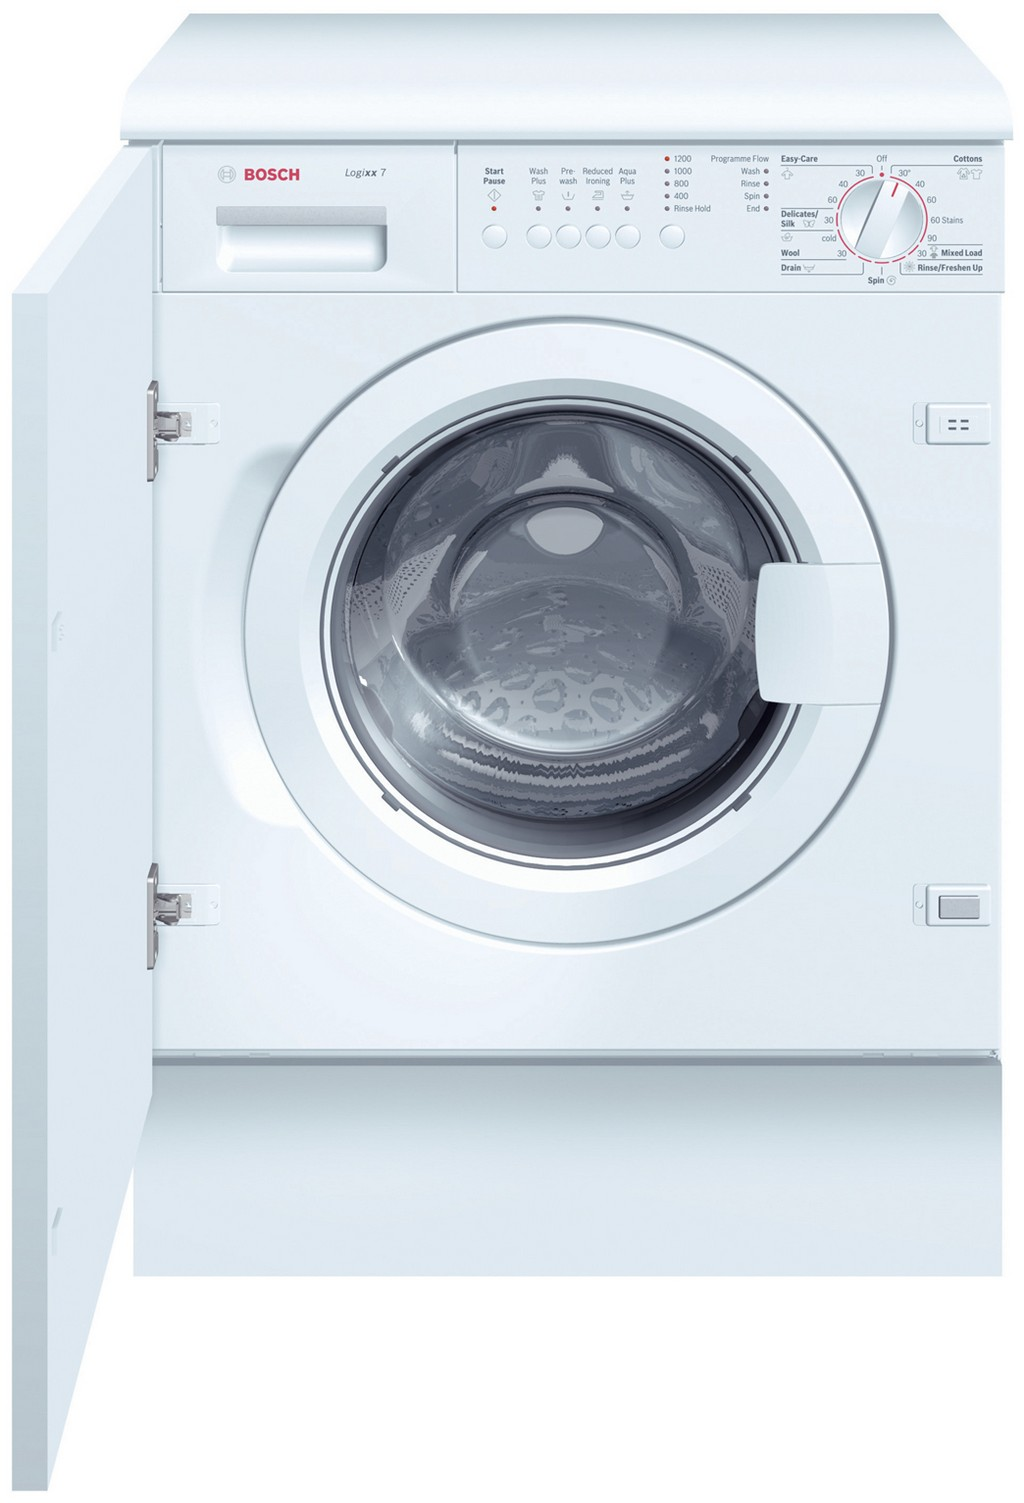 haier washing machine, whirlpool cabrio washing machine, washer machine